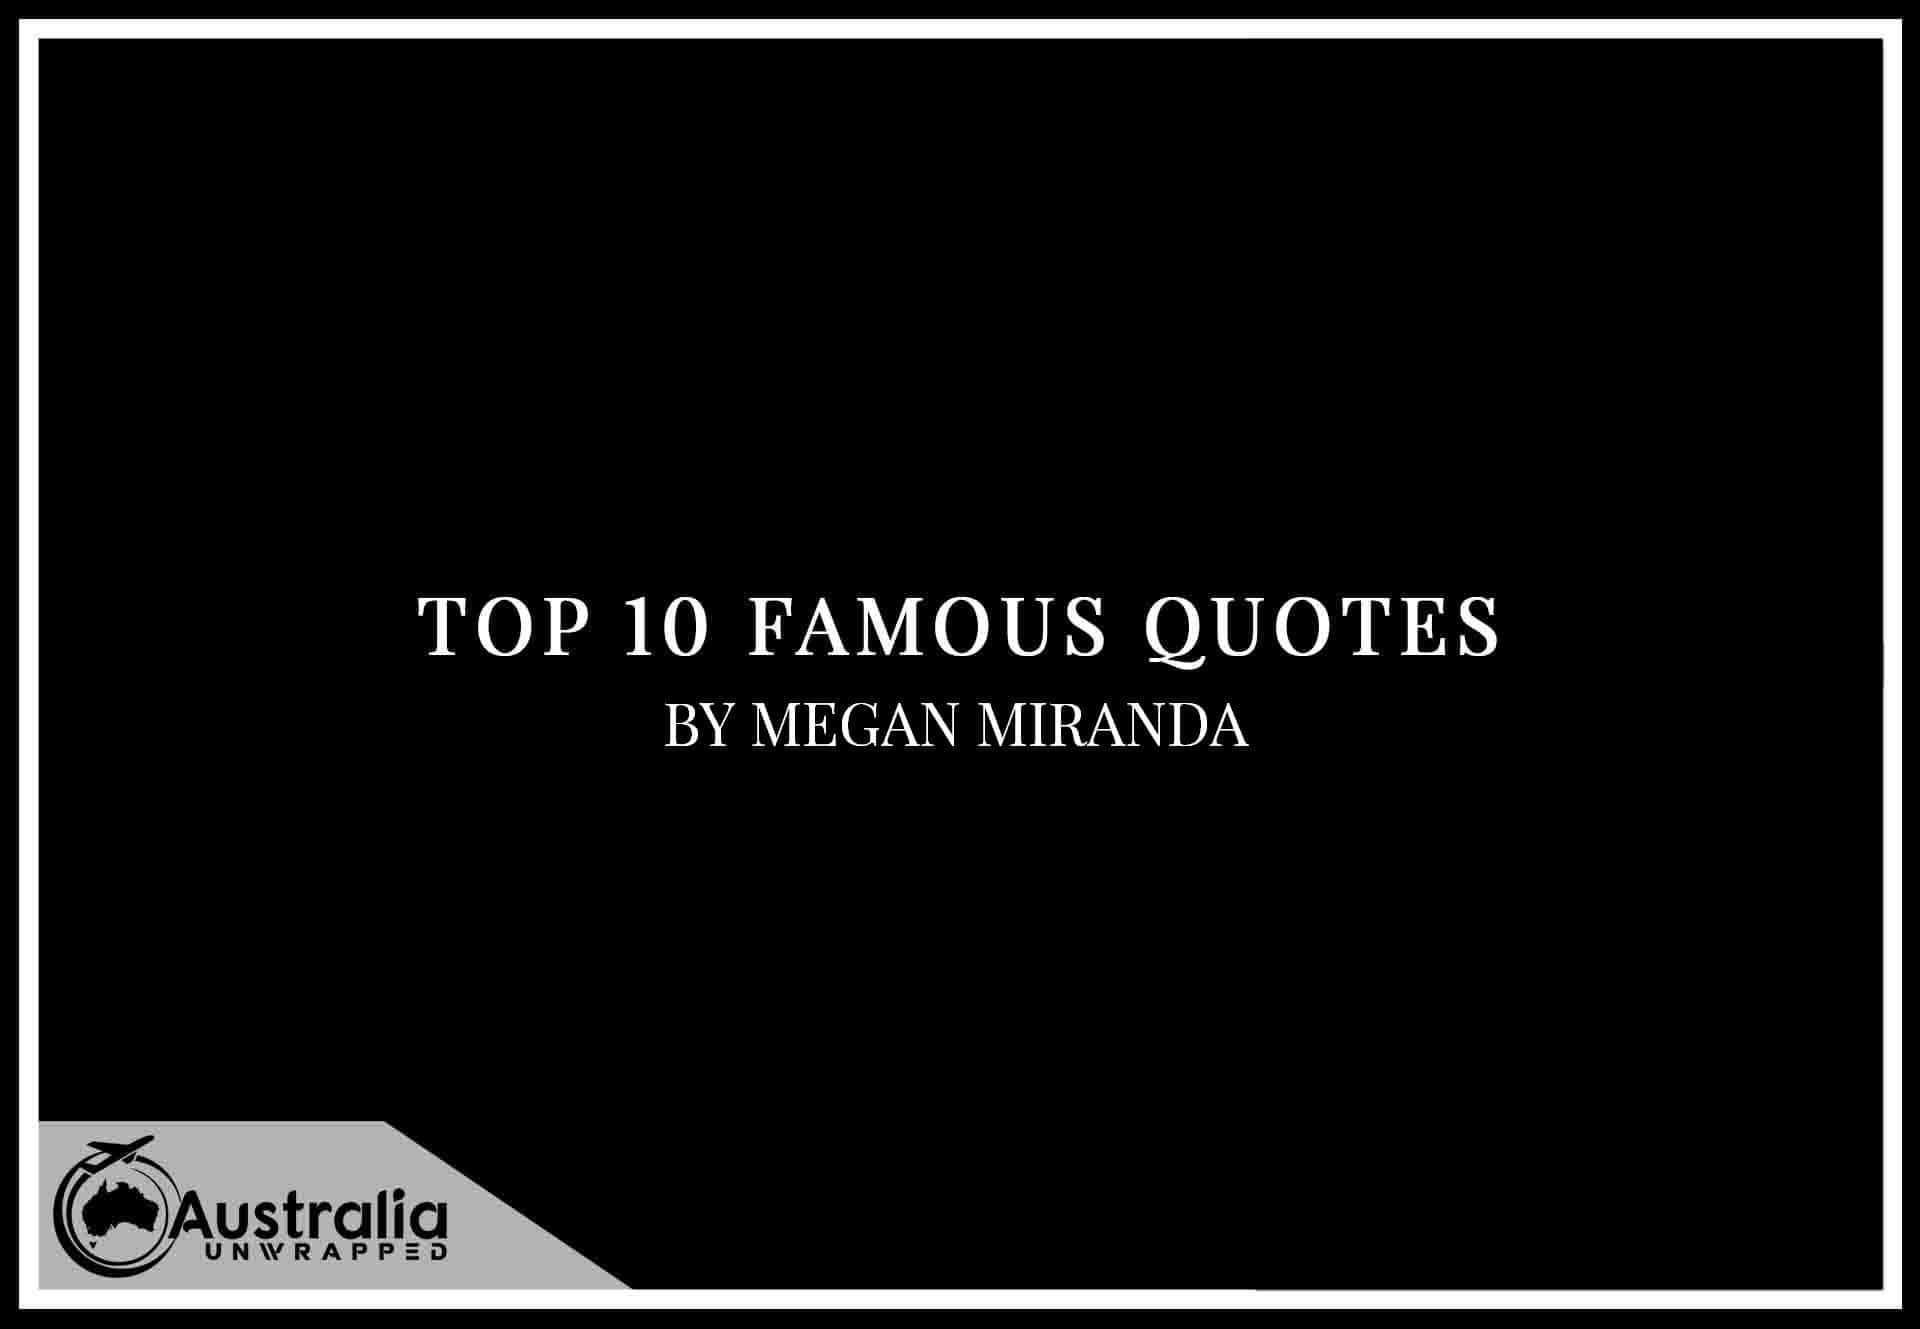 Top 10 Famous Quotes by Author Megan Miranda